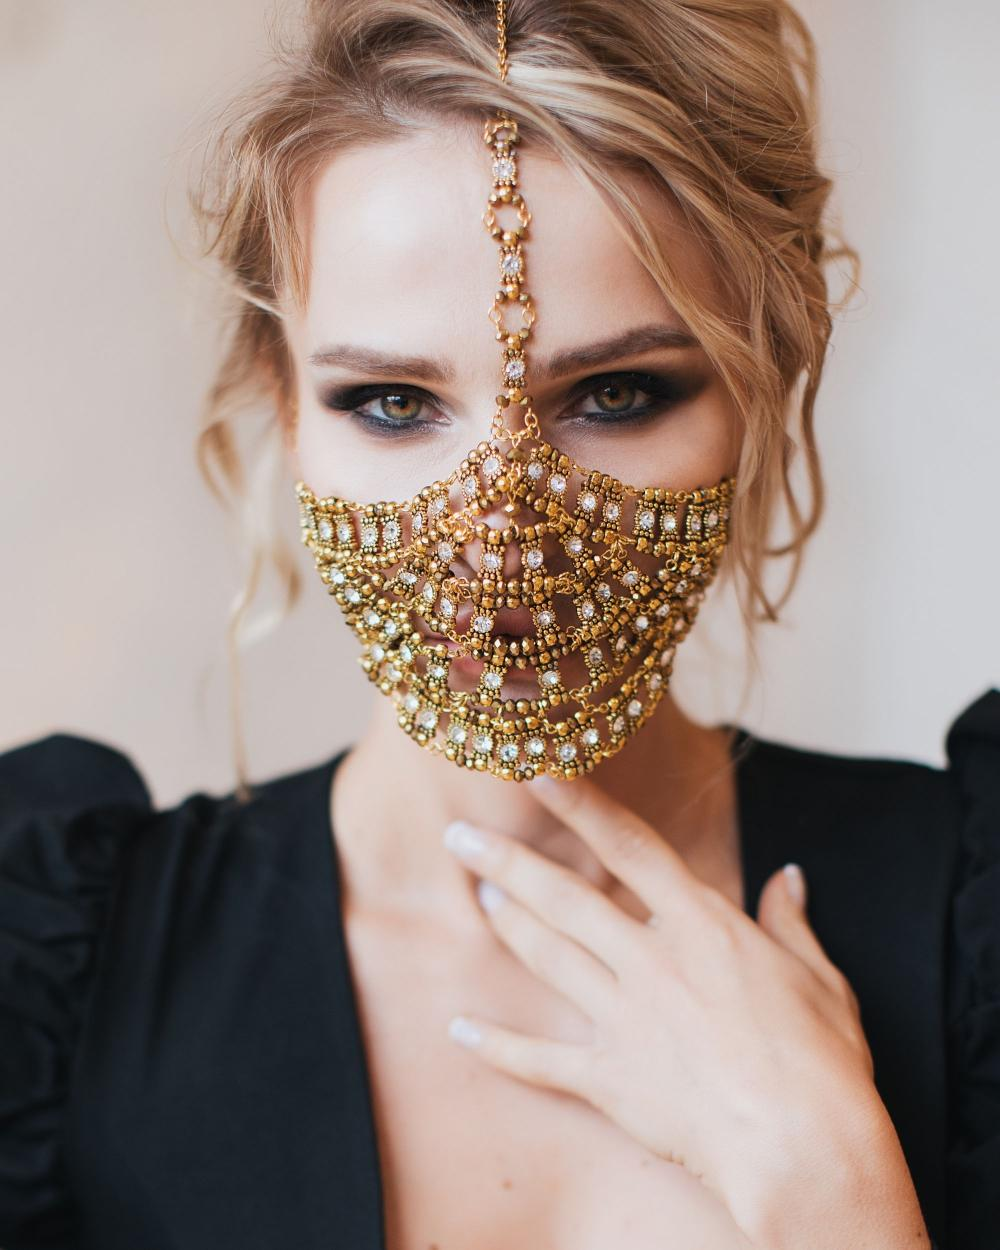 The face mask is not only a protective accessory, but also a stylish addition to your every outfit